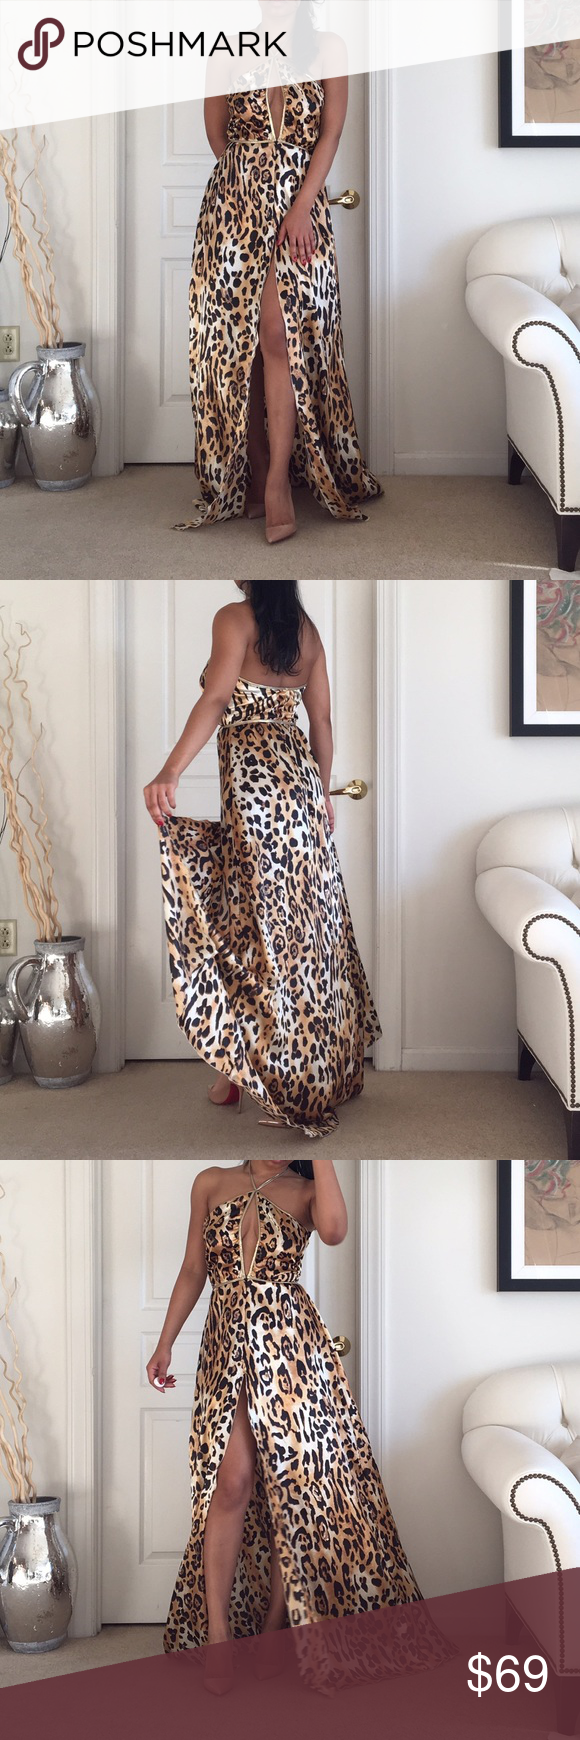 Holt Miami leopard swim coverup Beautiful leopard print swim coverup with gold tie around neck. Ties are stretchy to accommodate height. There is a zip in the front and a nice airy slit. Lycra poly blend. I'm 5,5 wearing 120mm heels. No trades please. holt miami Swim Coverups